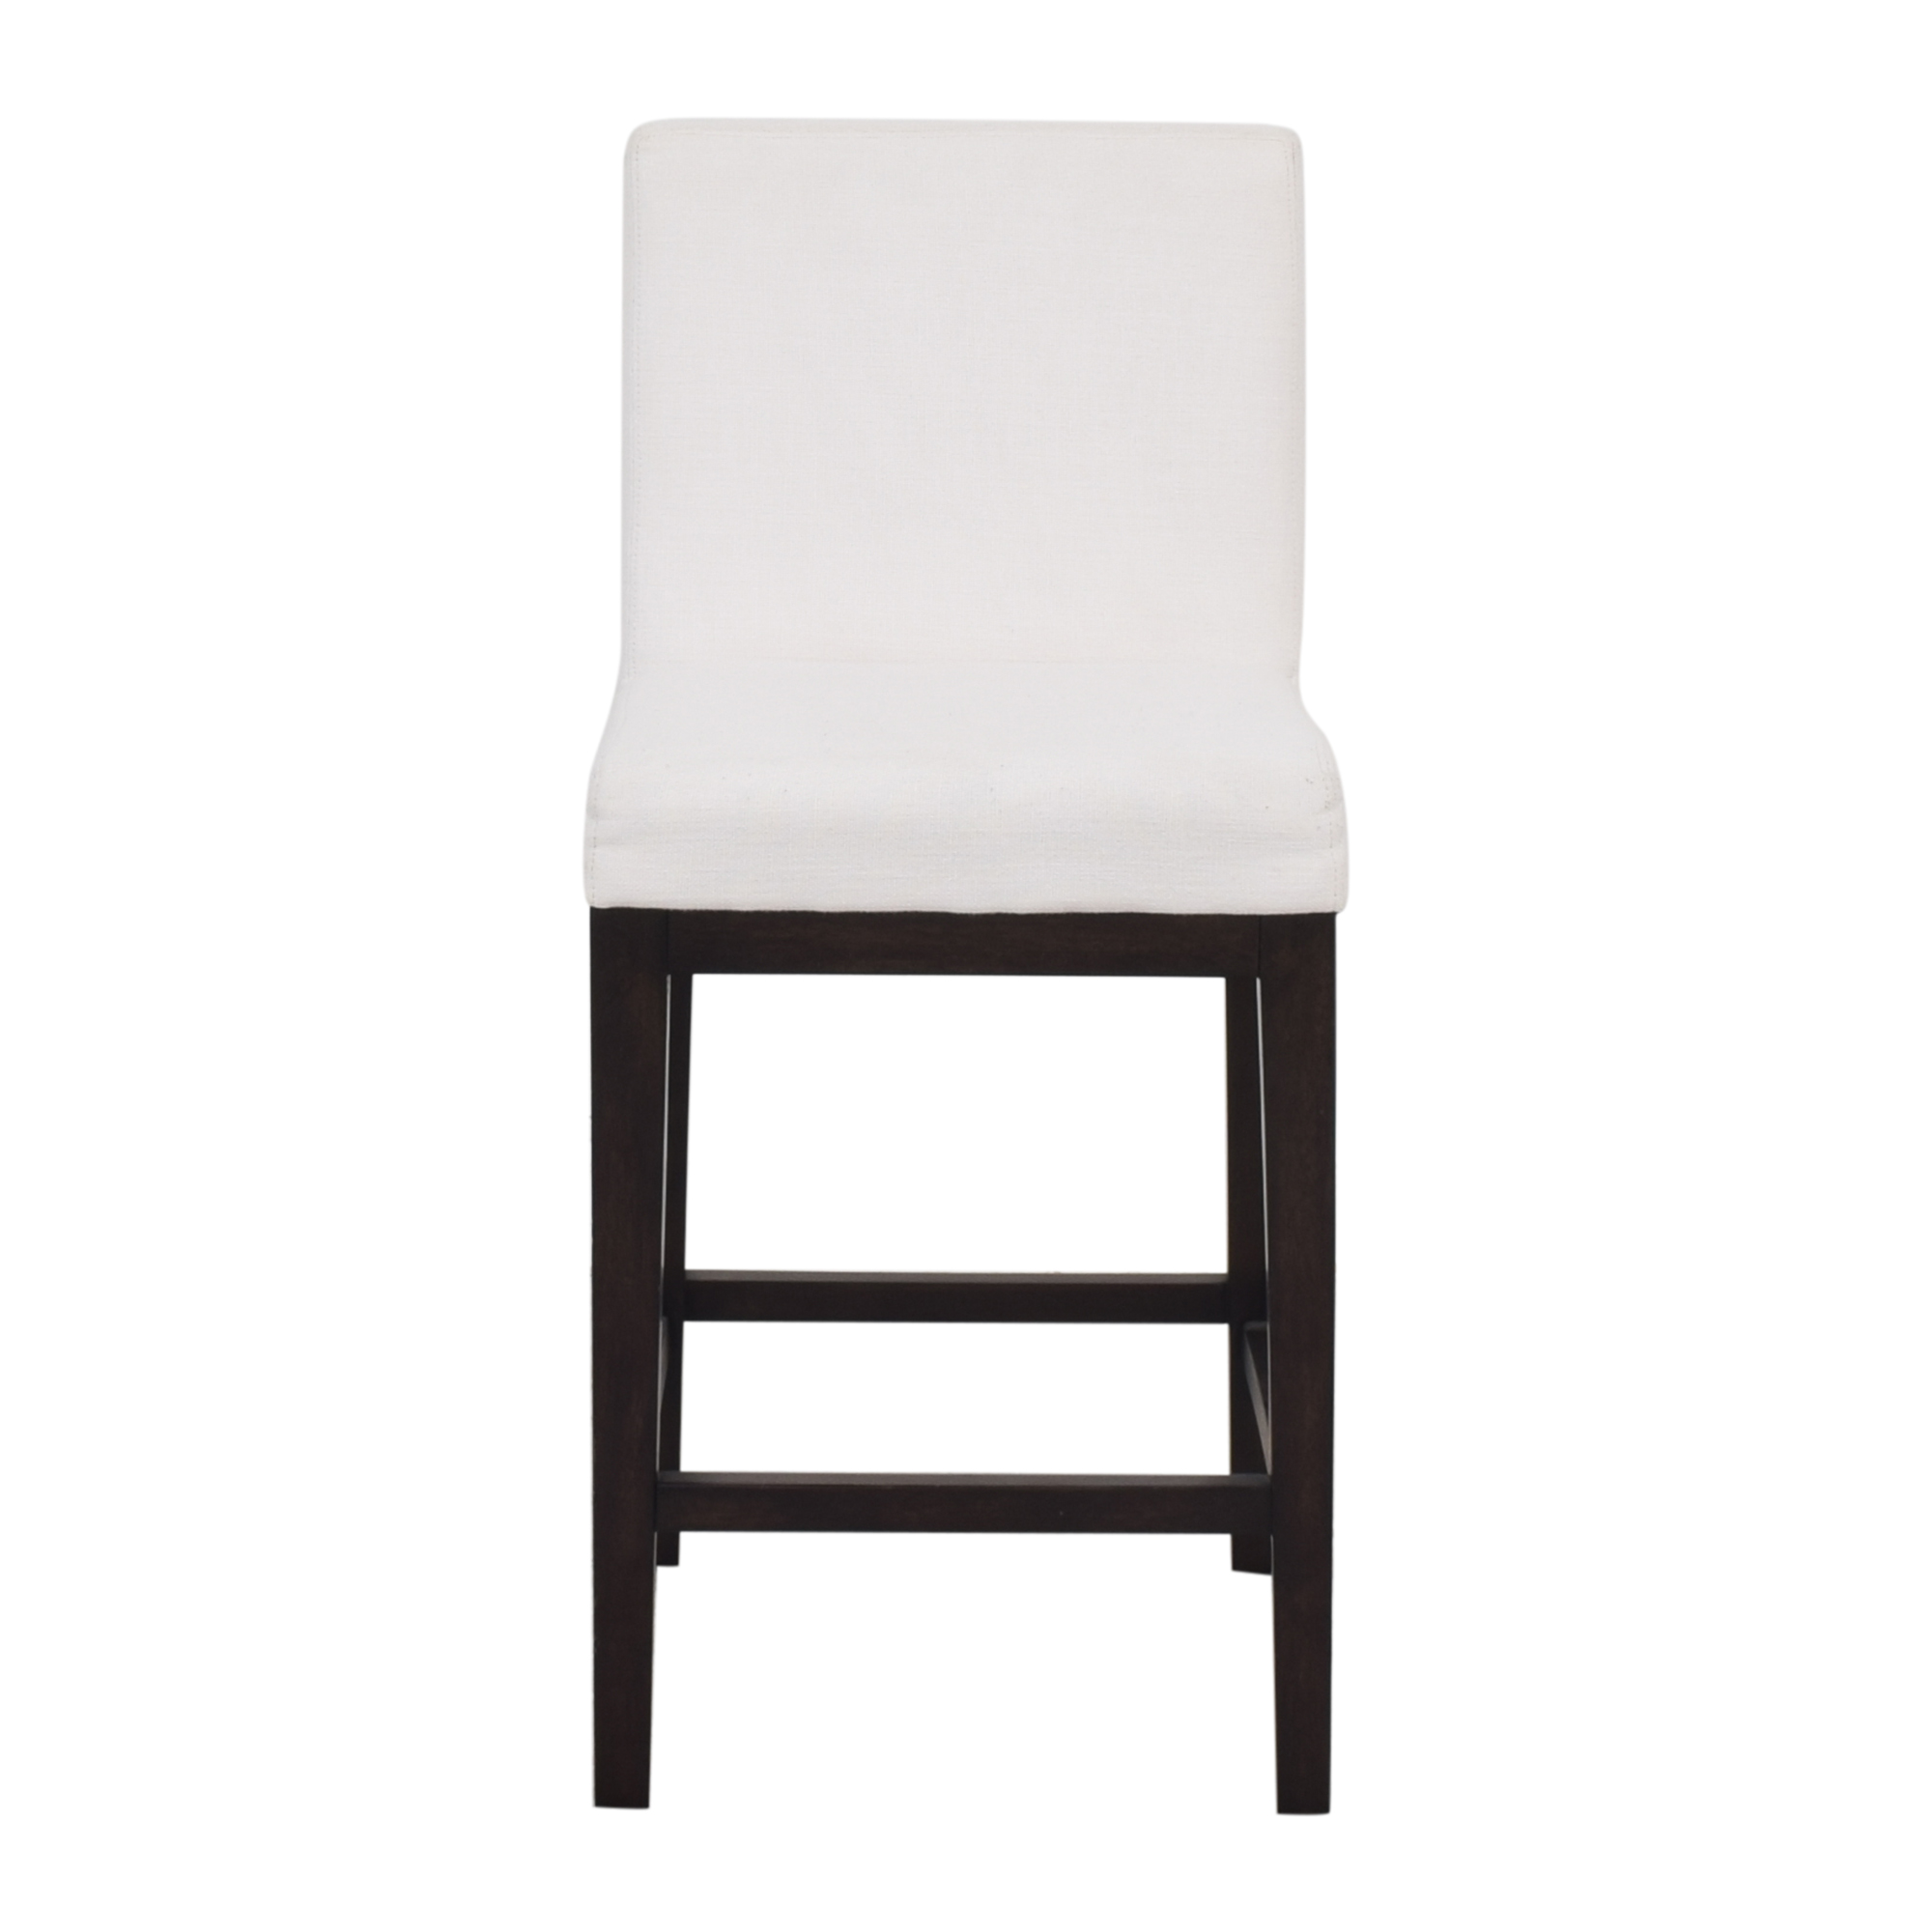 Restoration Hardware Morgan Armless Fabric Stool sale